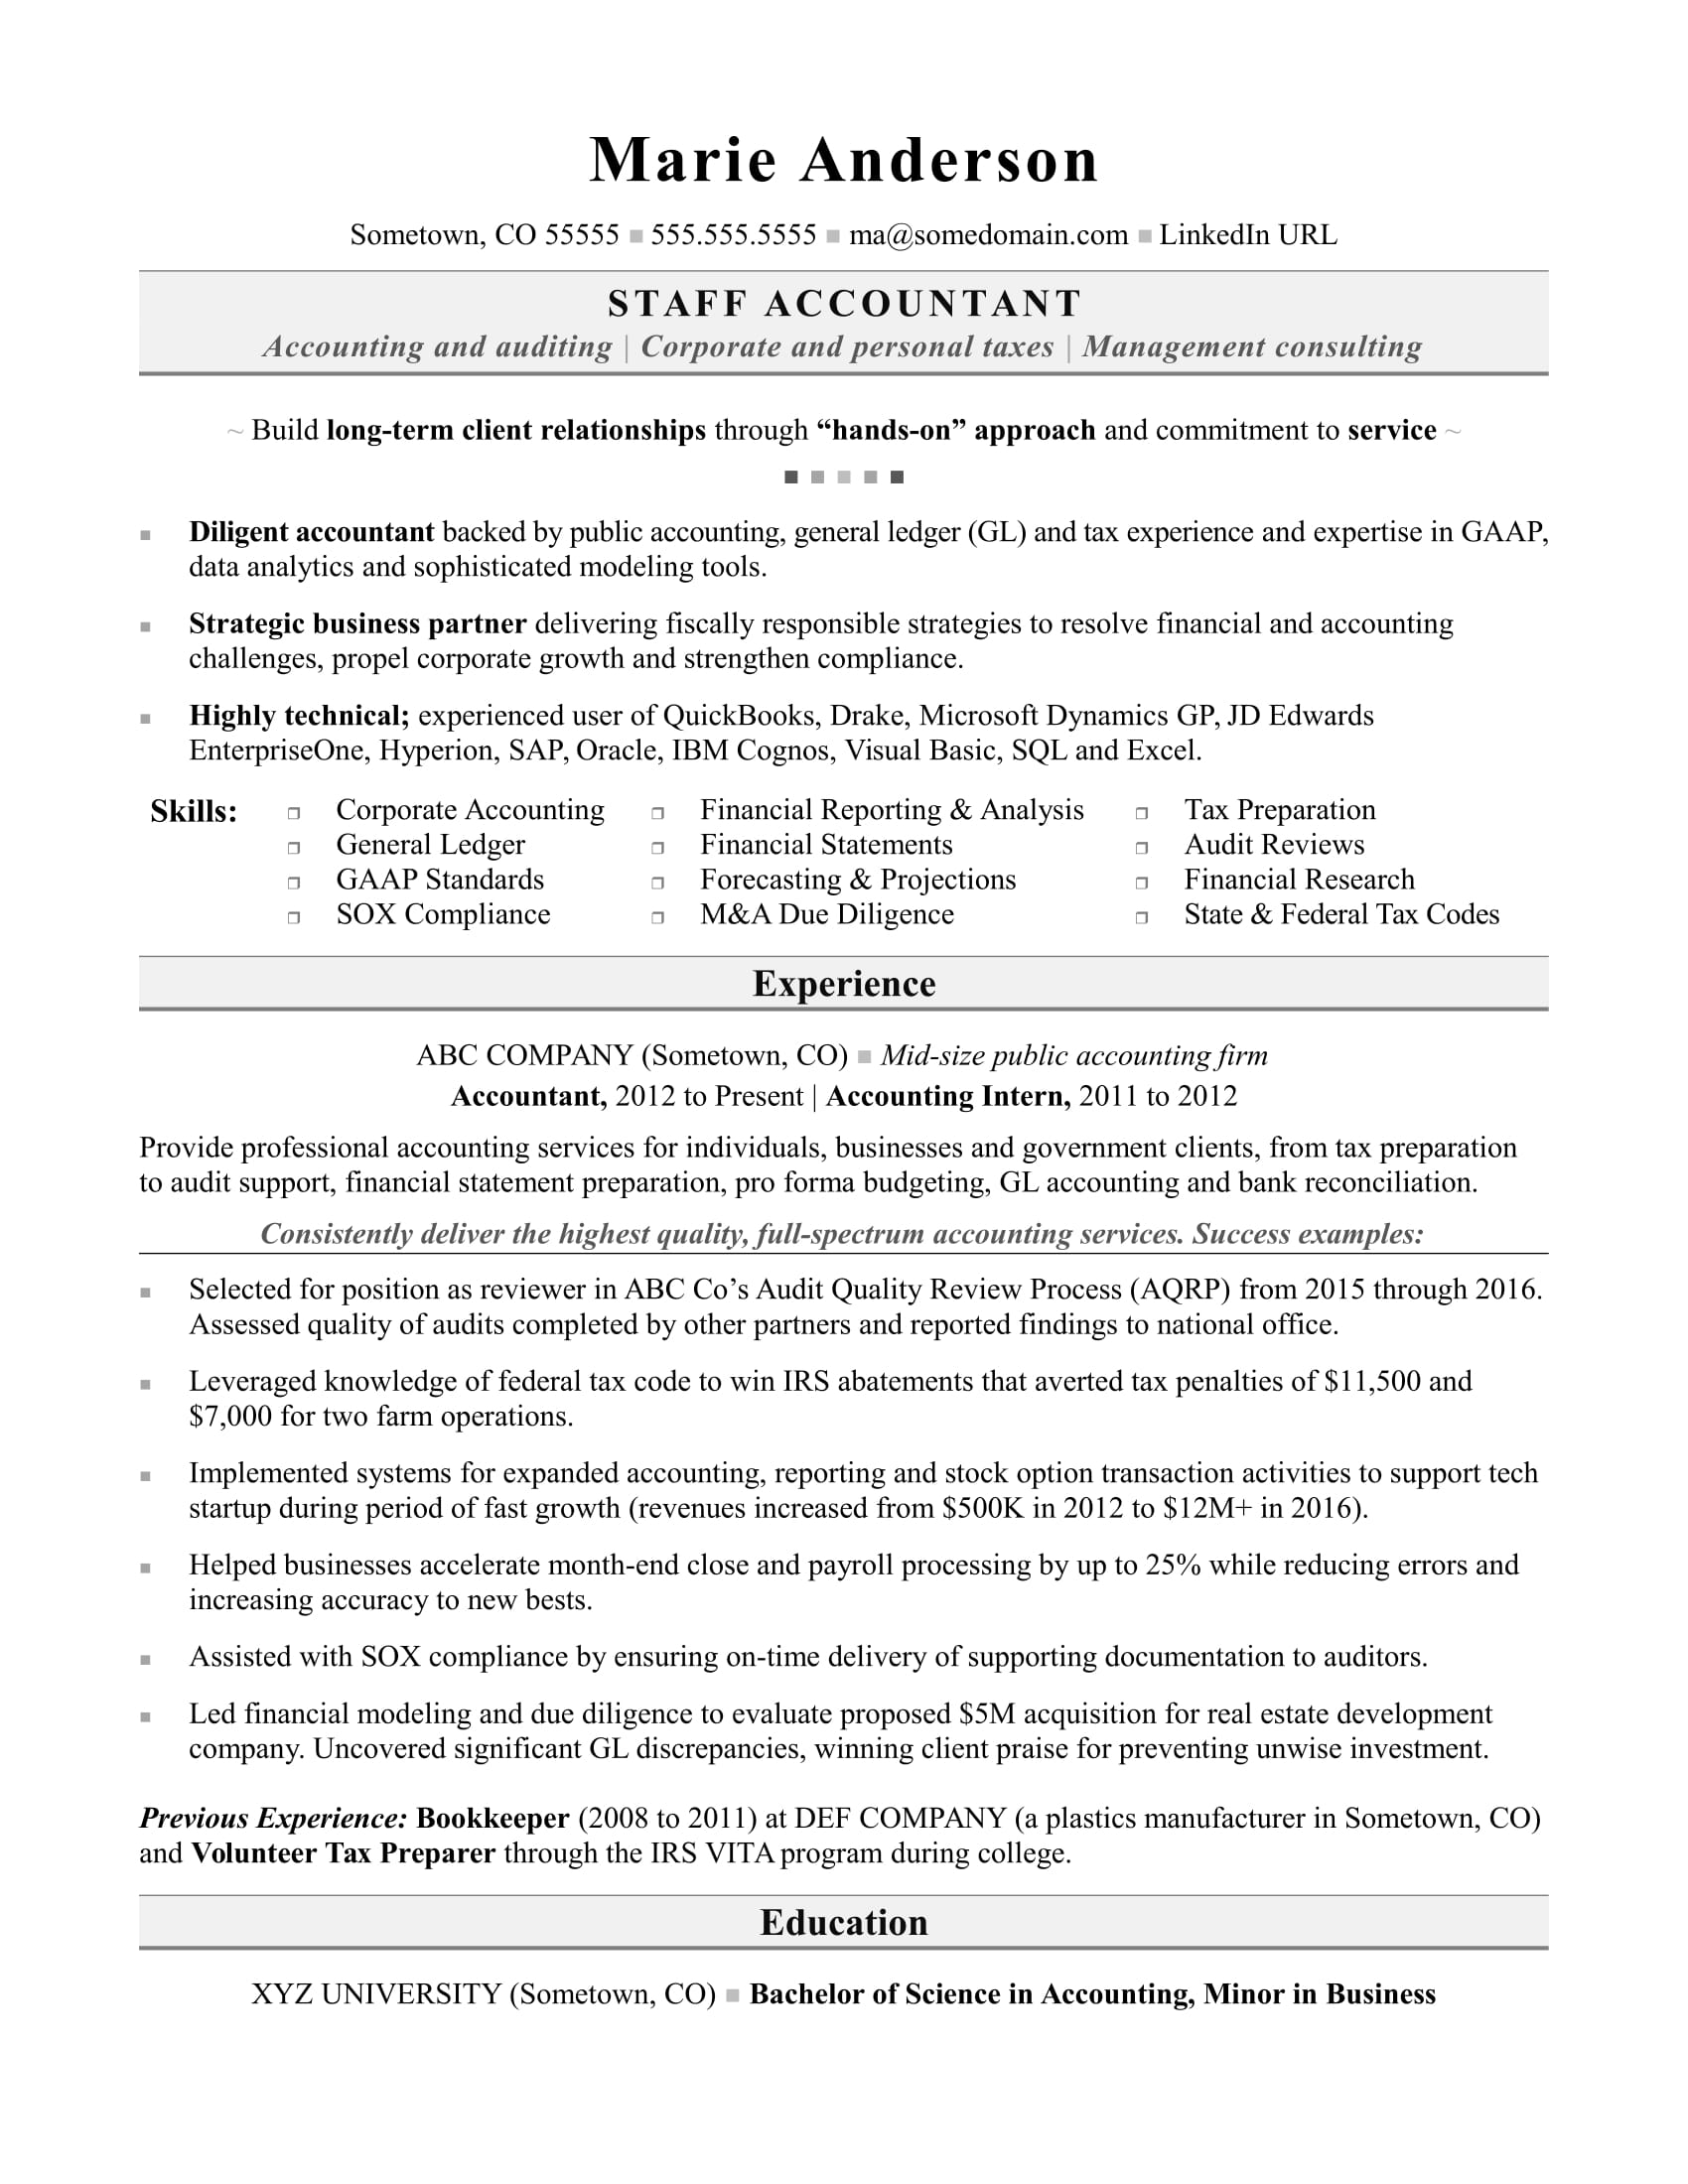 accounting resume sample monster free template for term employment accountant indesign Resume Free Resume Template For Long Term Employment